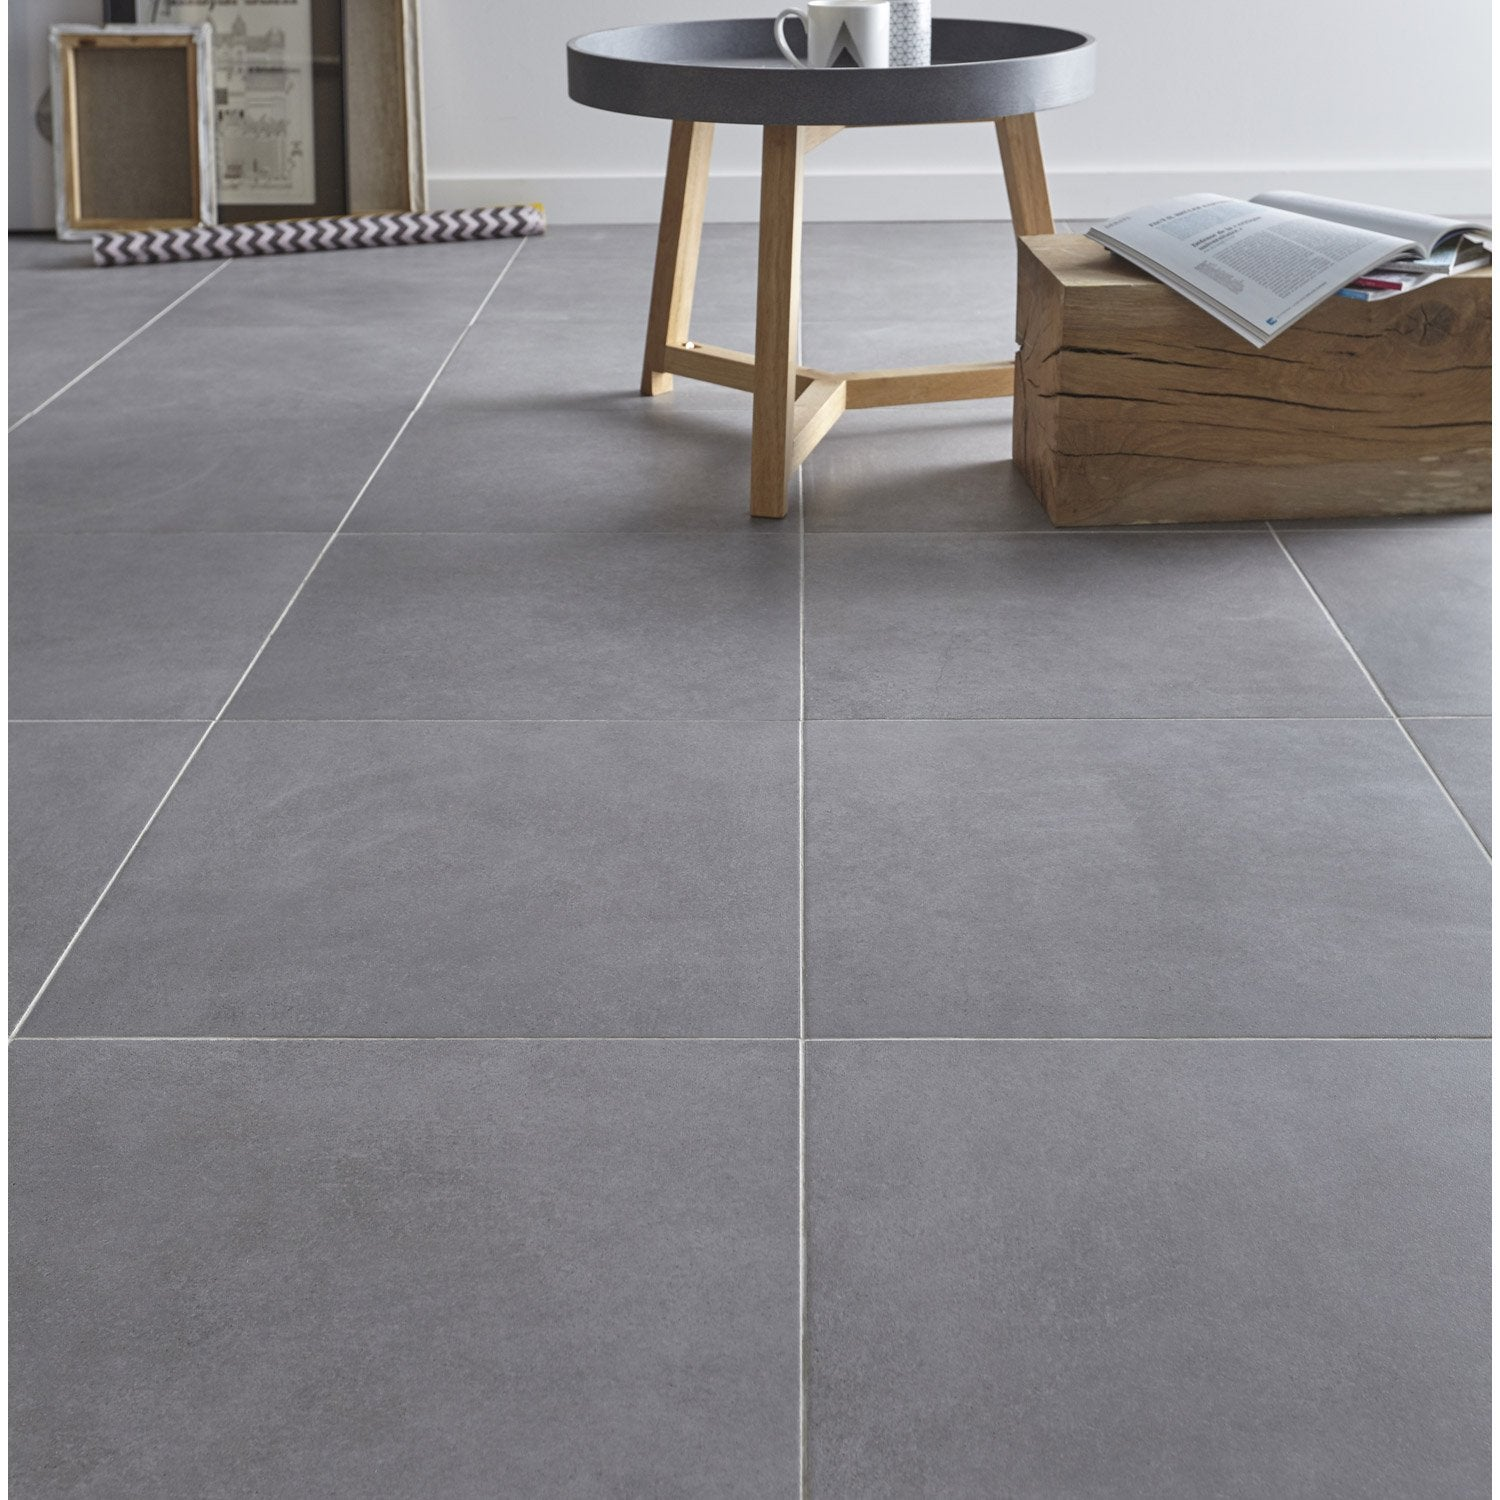 Carrelage sol gris effet b ton madison x cm for Carrelage grand carreaux gris